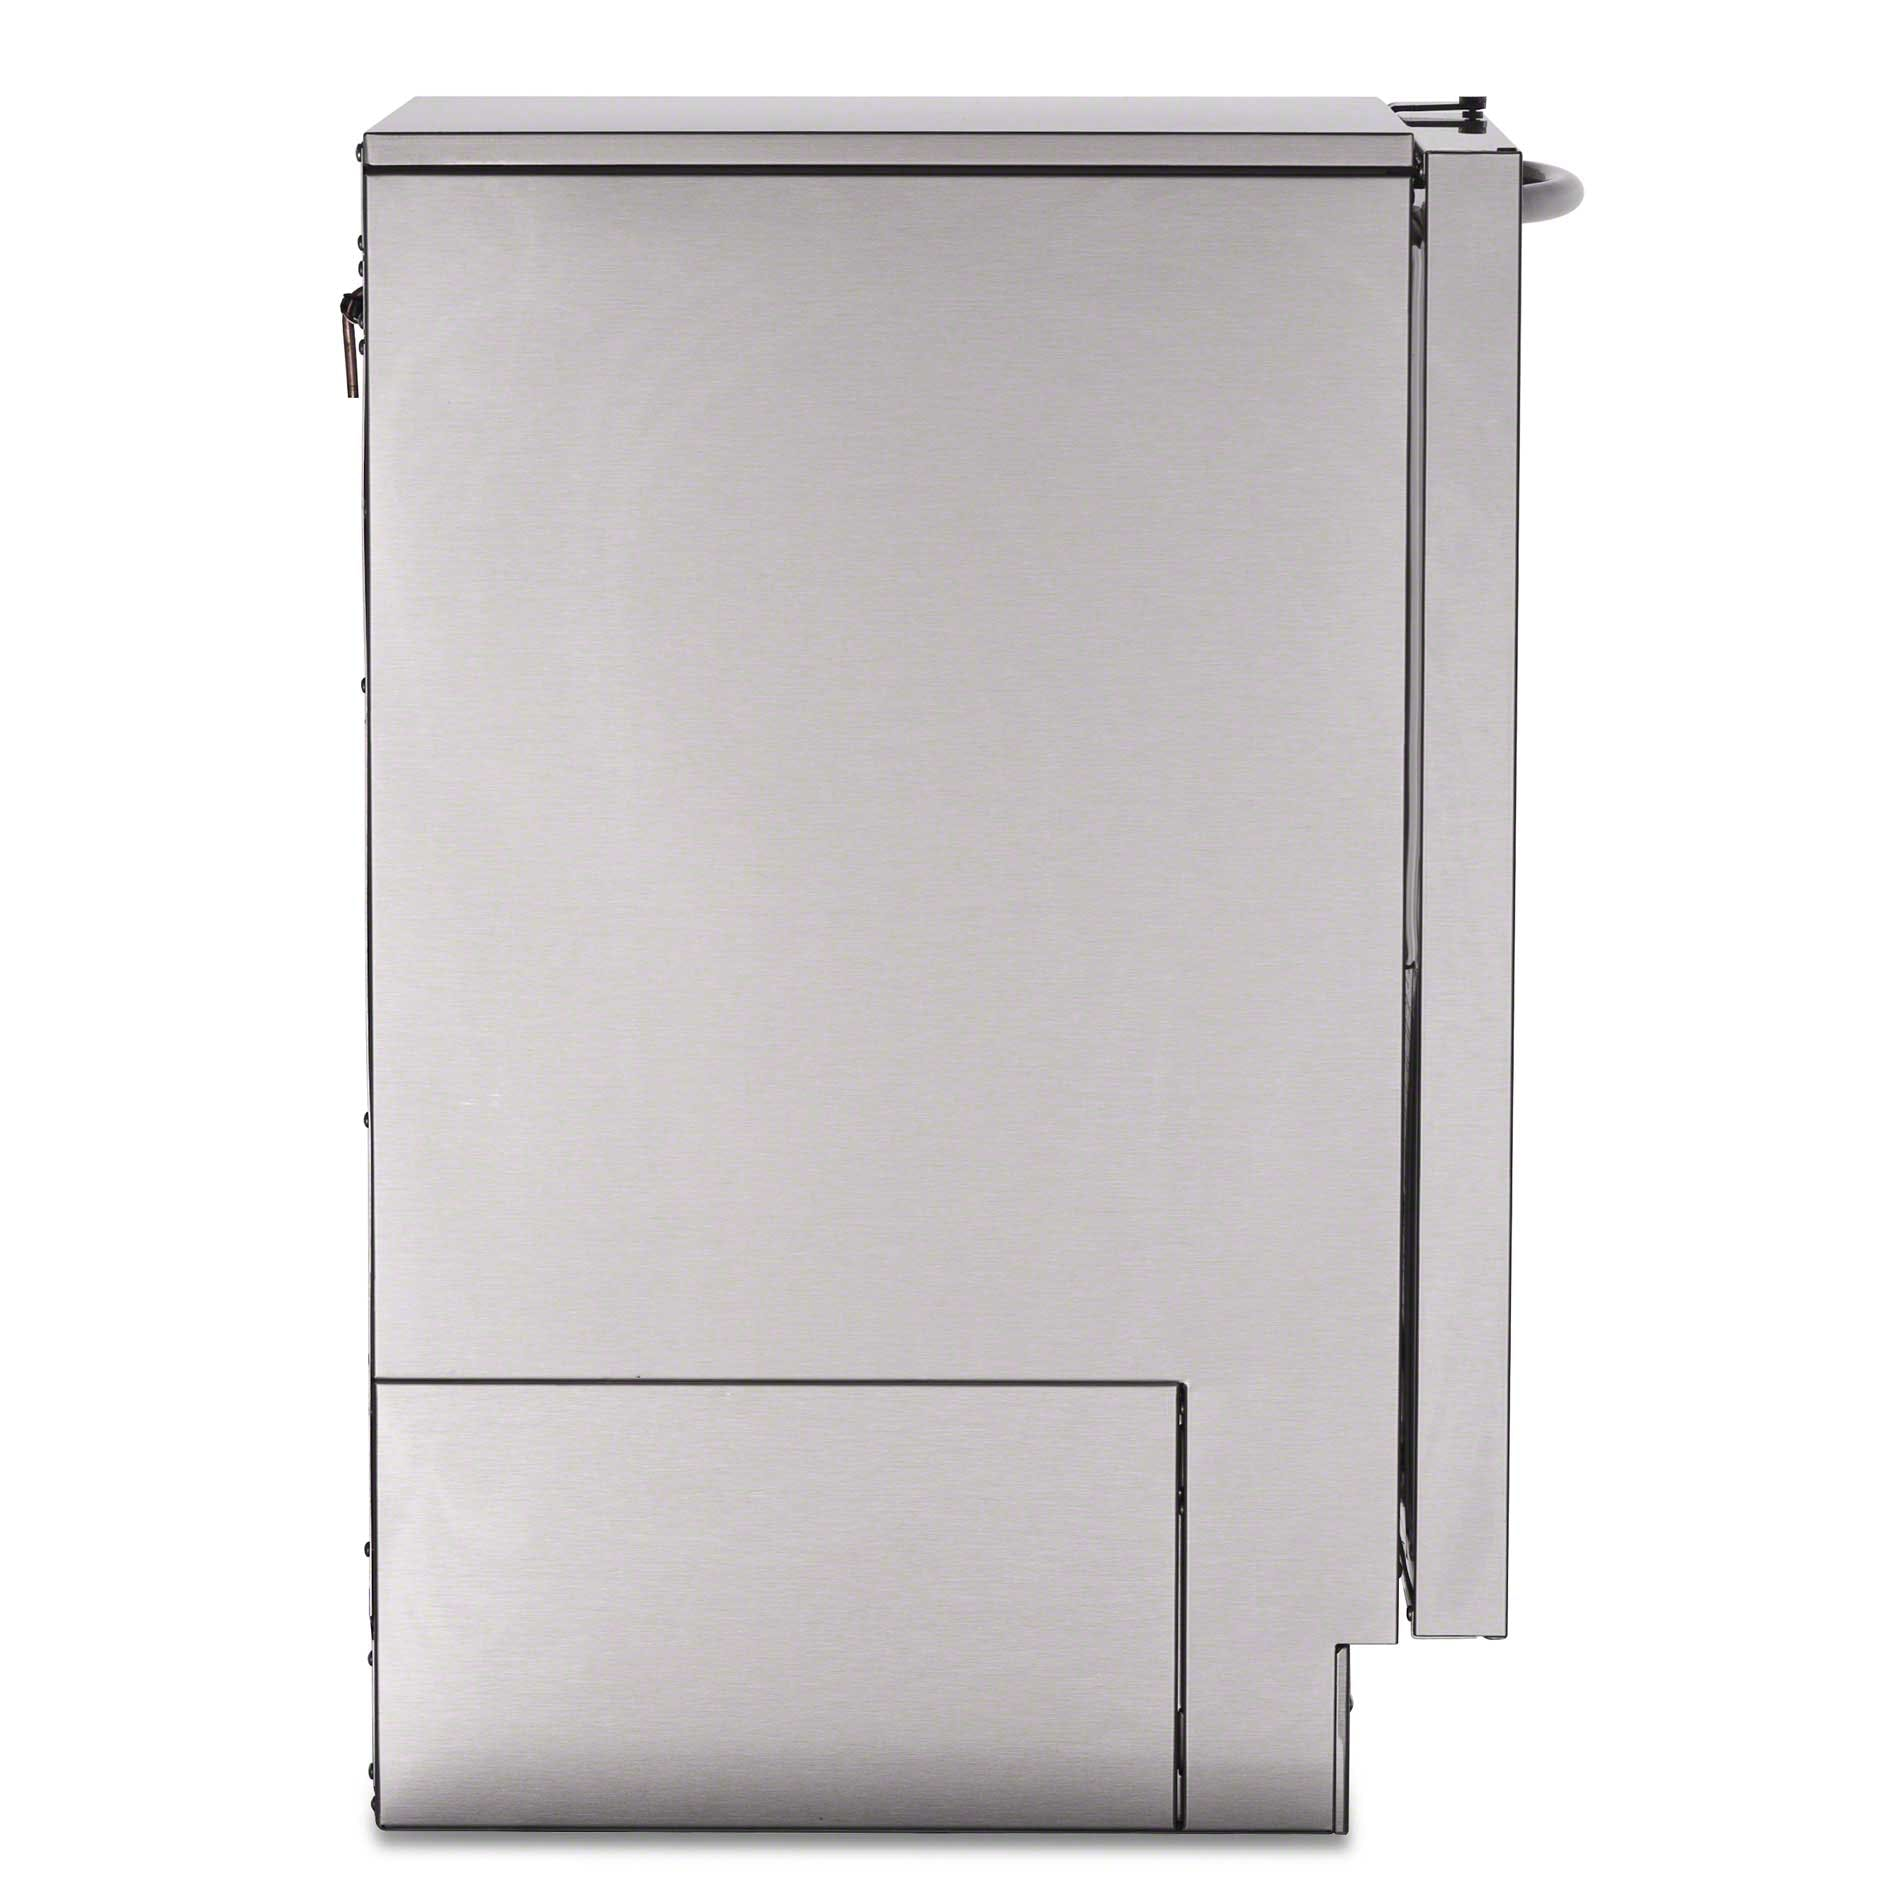 Ice-O-Matic - GEMU090 85 lb Self-Contained Pearl Ice Machine - sold by Food Service Warehouse